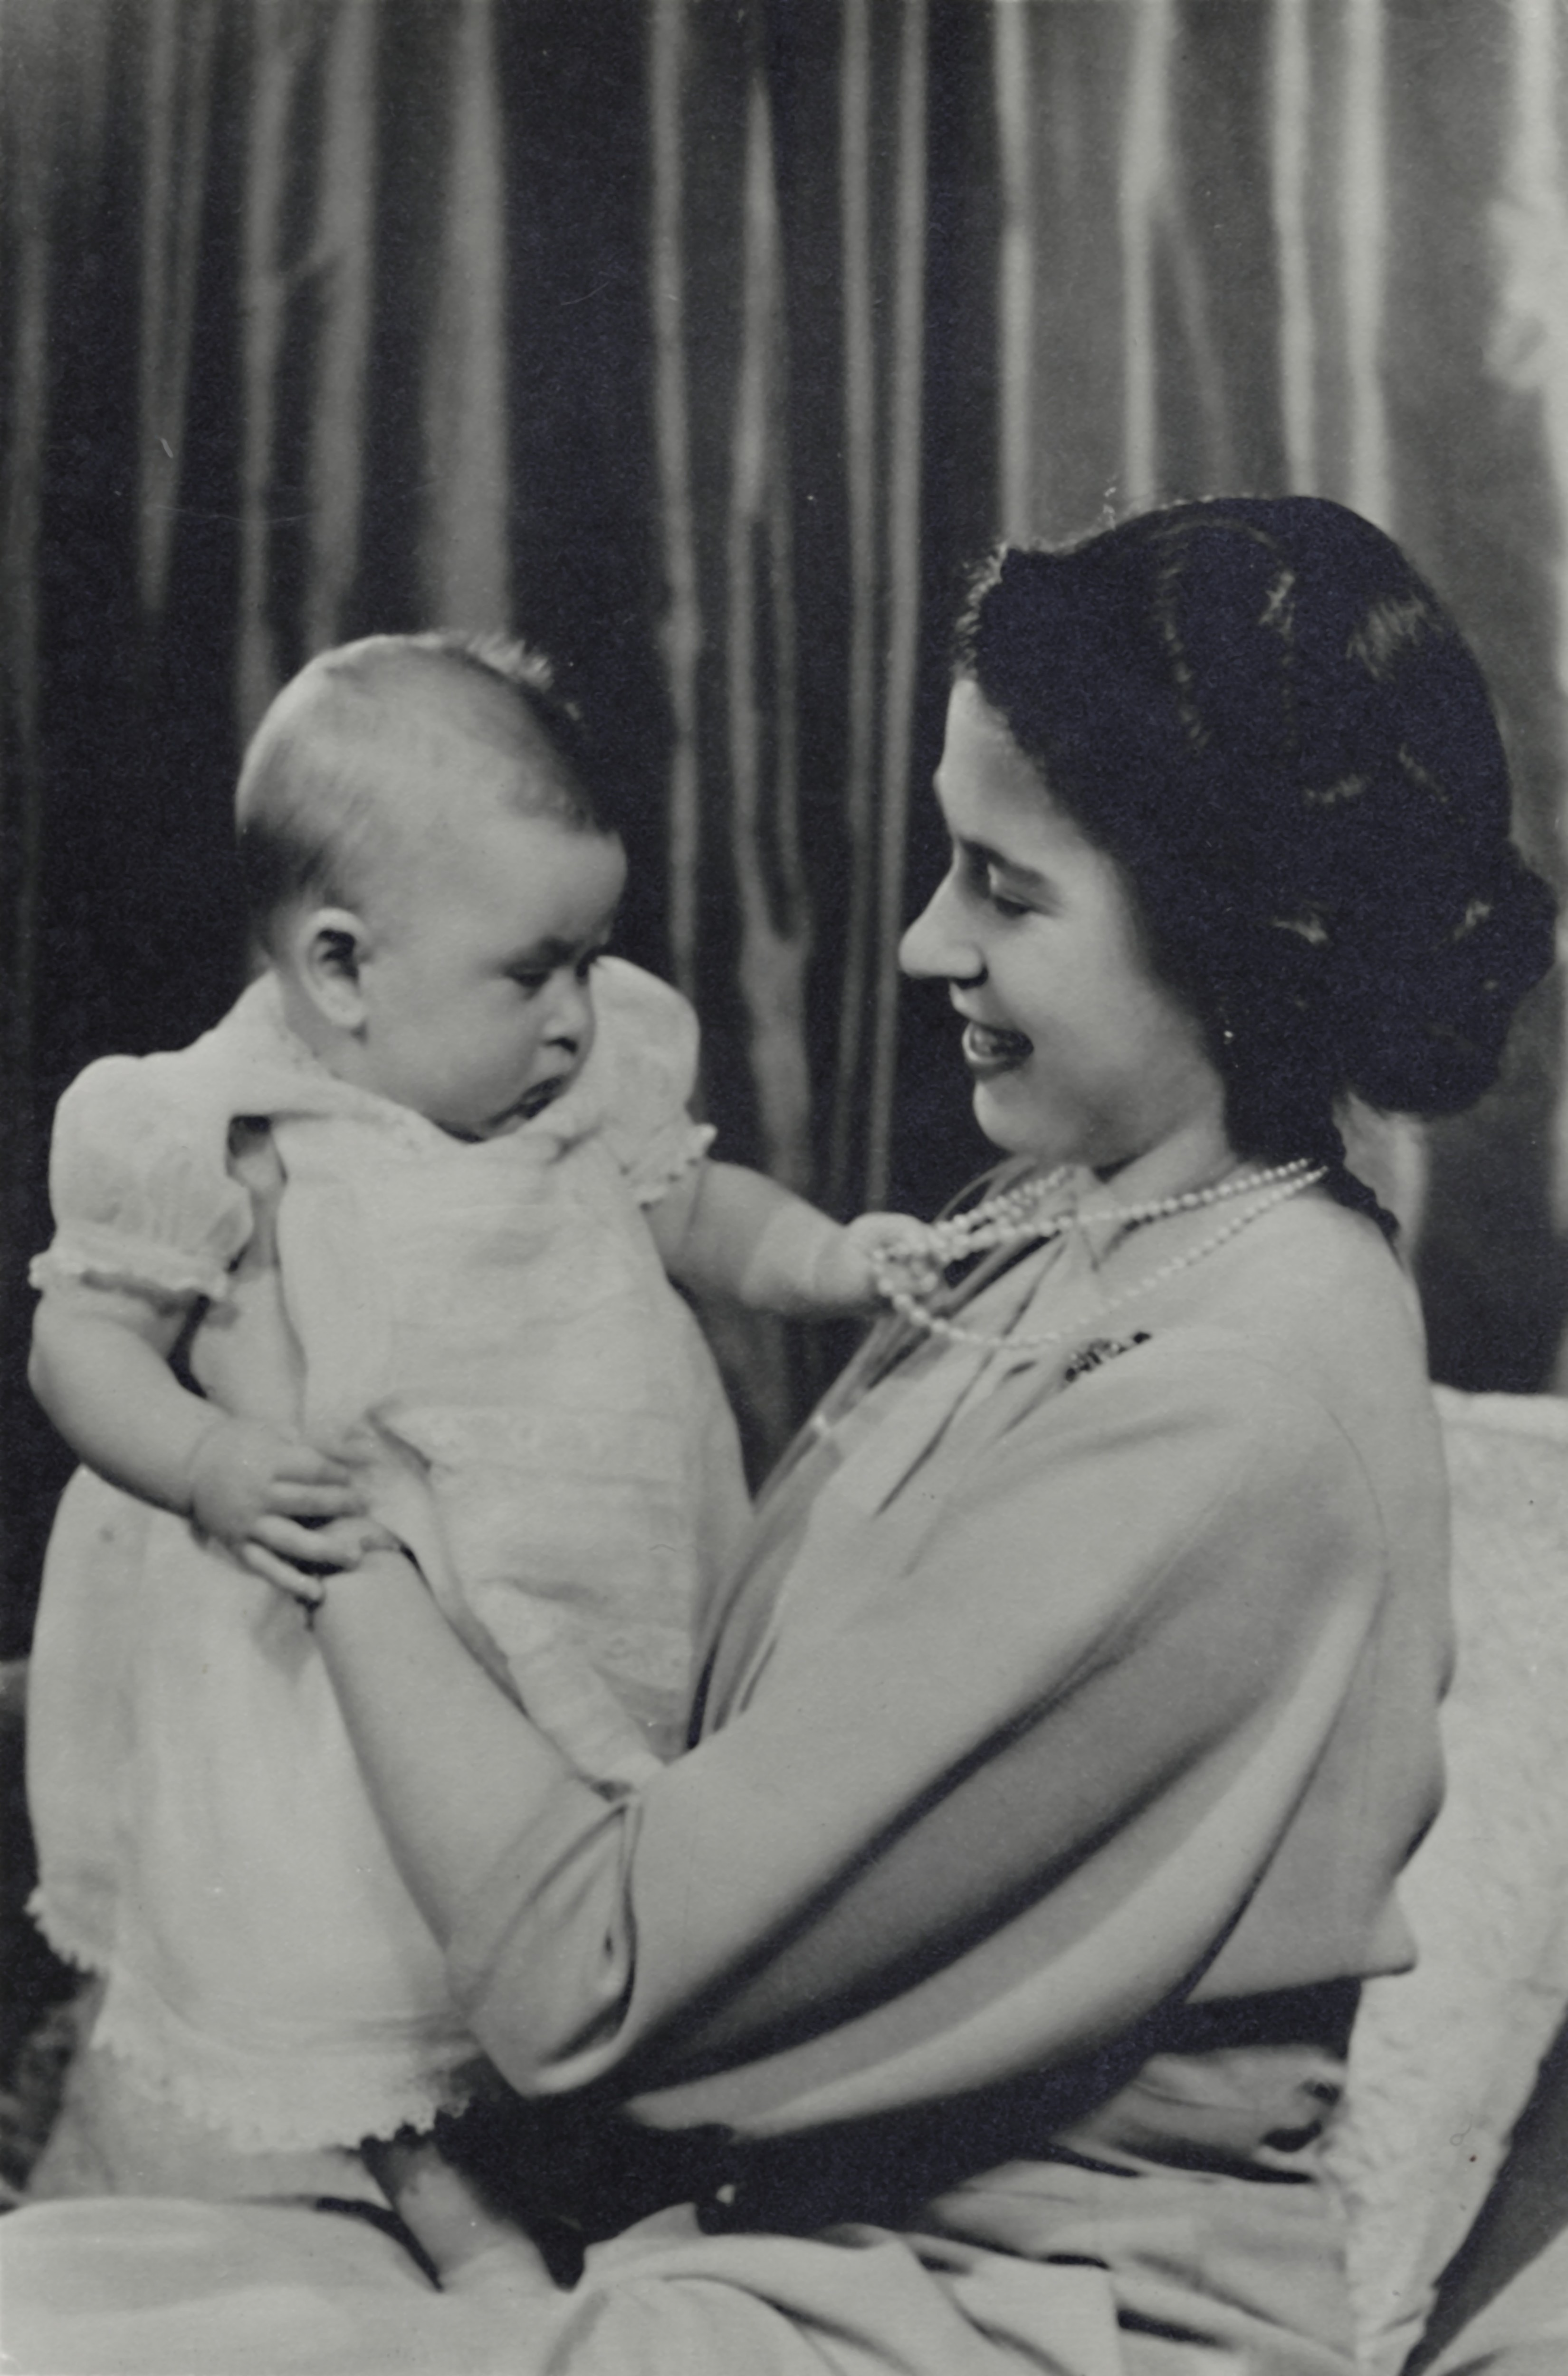 Princess Elizabeth with son, Prince Charles in 1948. Prince Charles is wearing a classic infant gown with lace trim.